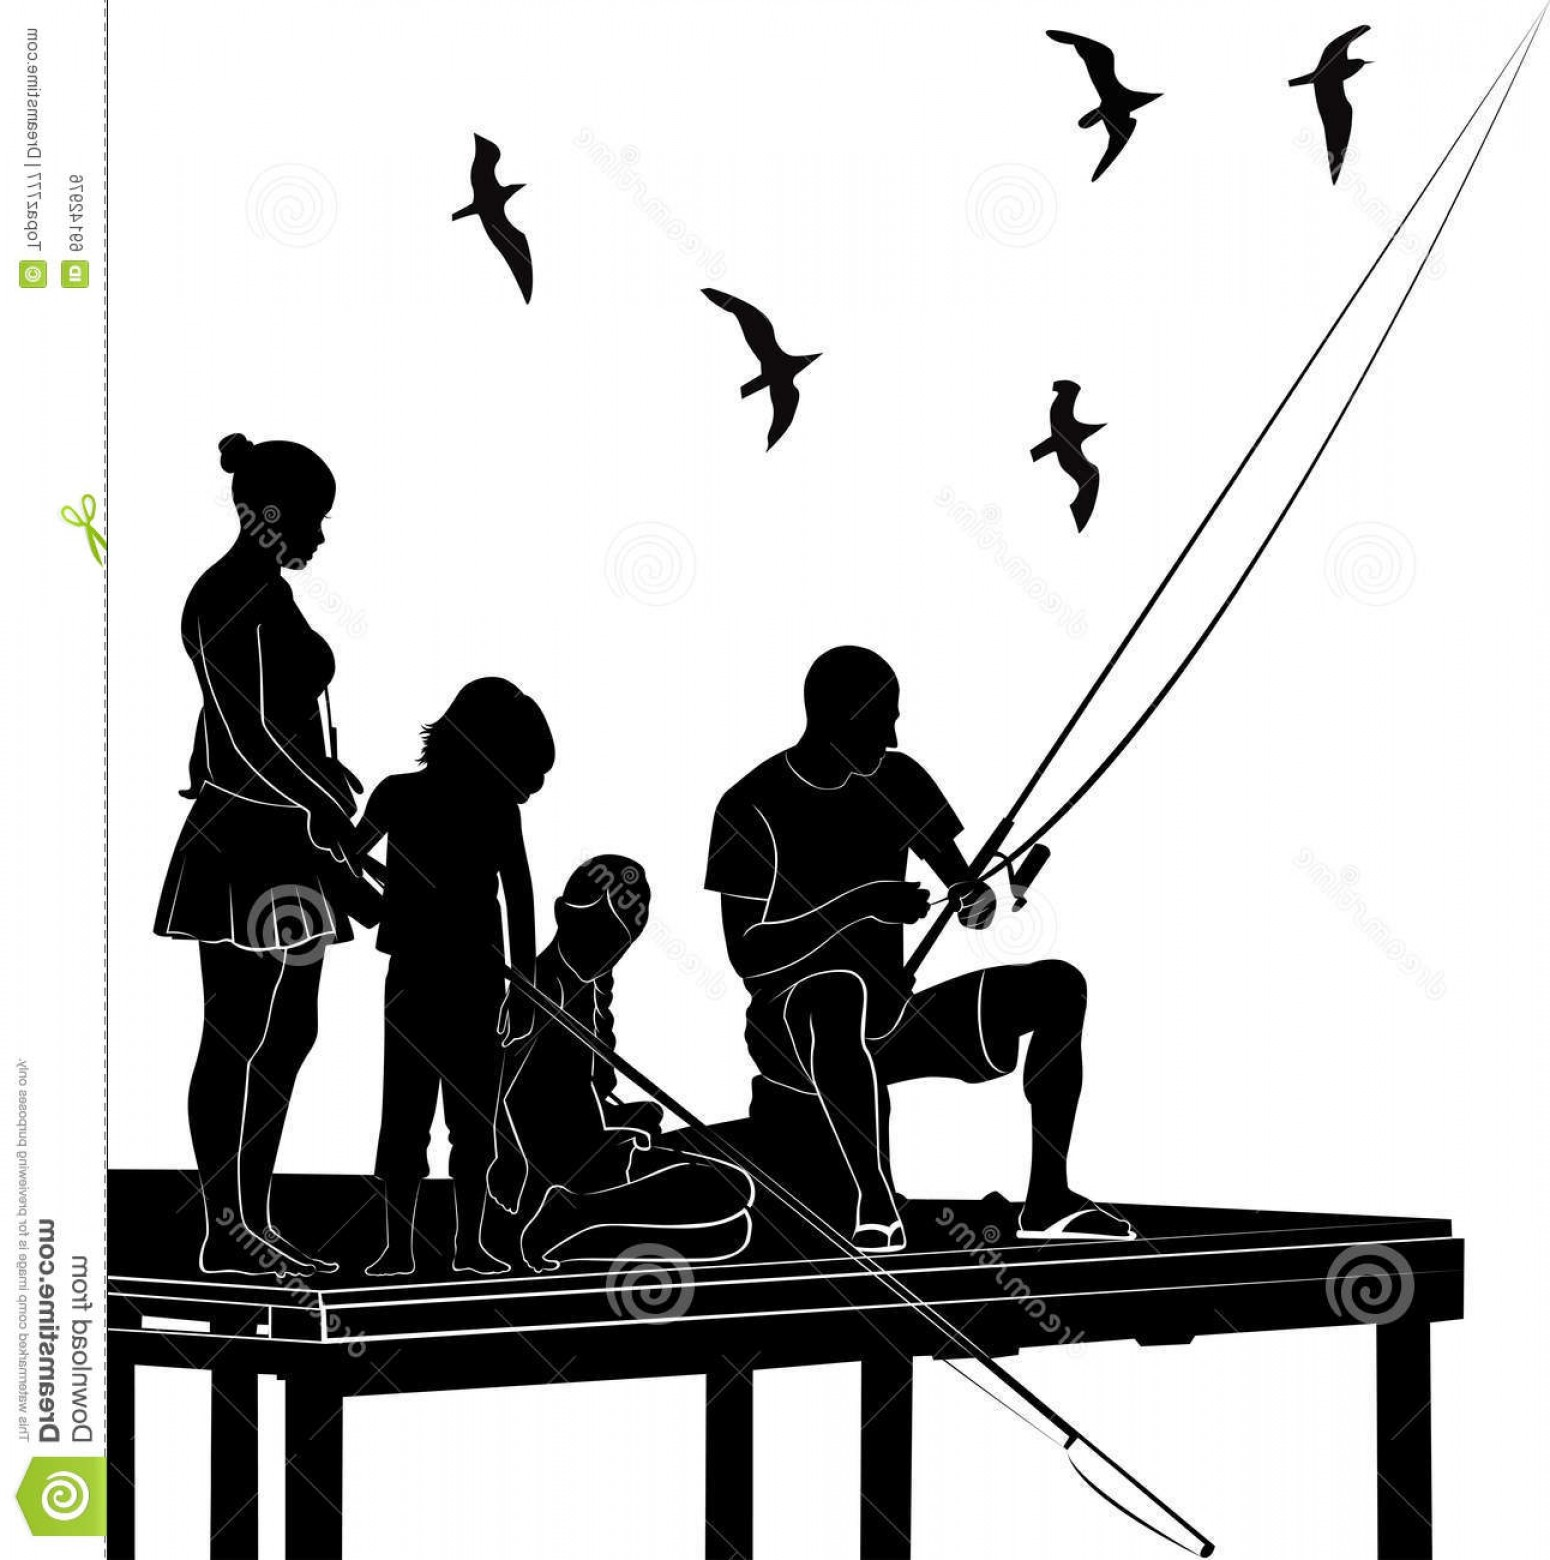 Family Silhouette Vector Art: Stock Illustration Fishing Family Silhouette Vector Hobby Activity Natural Image